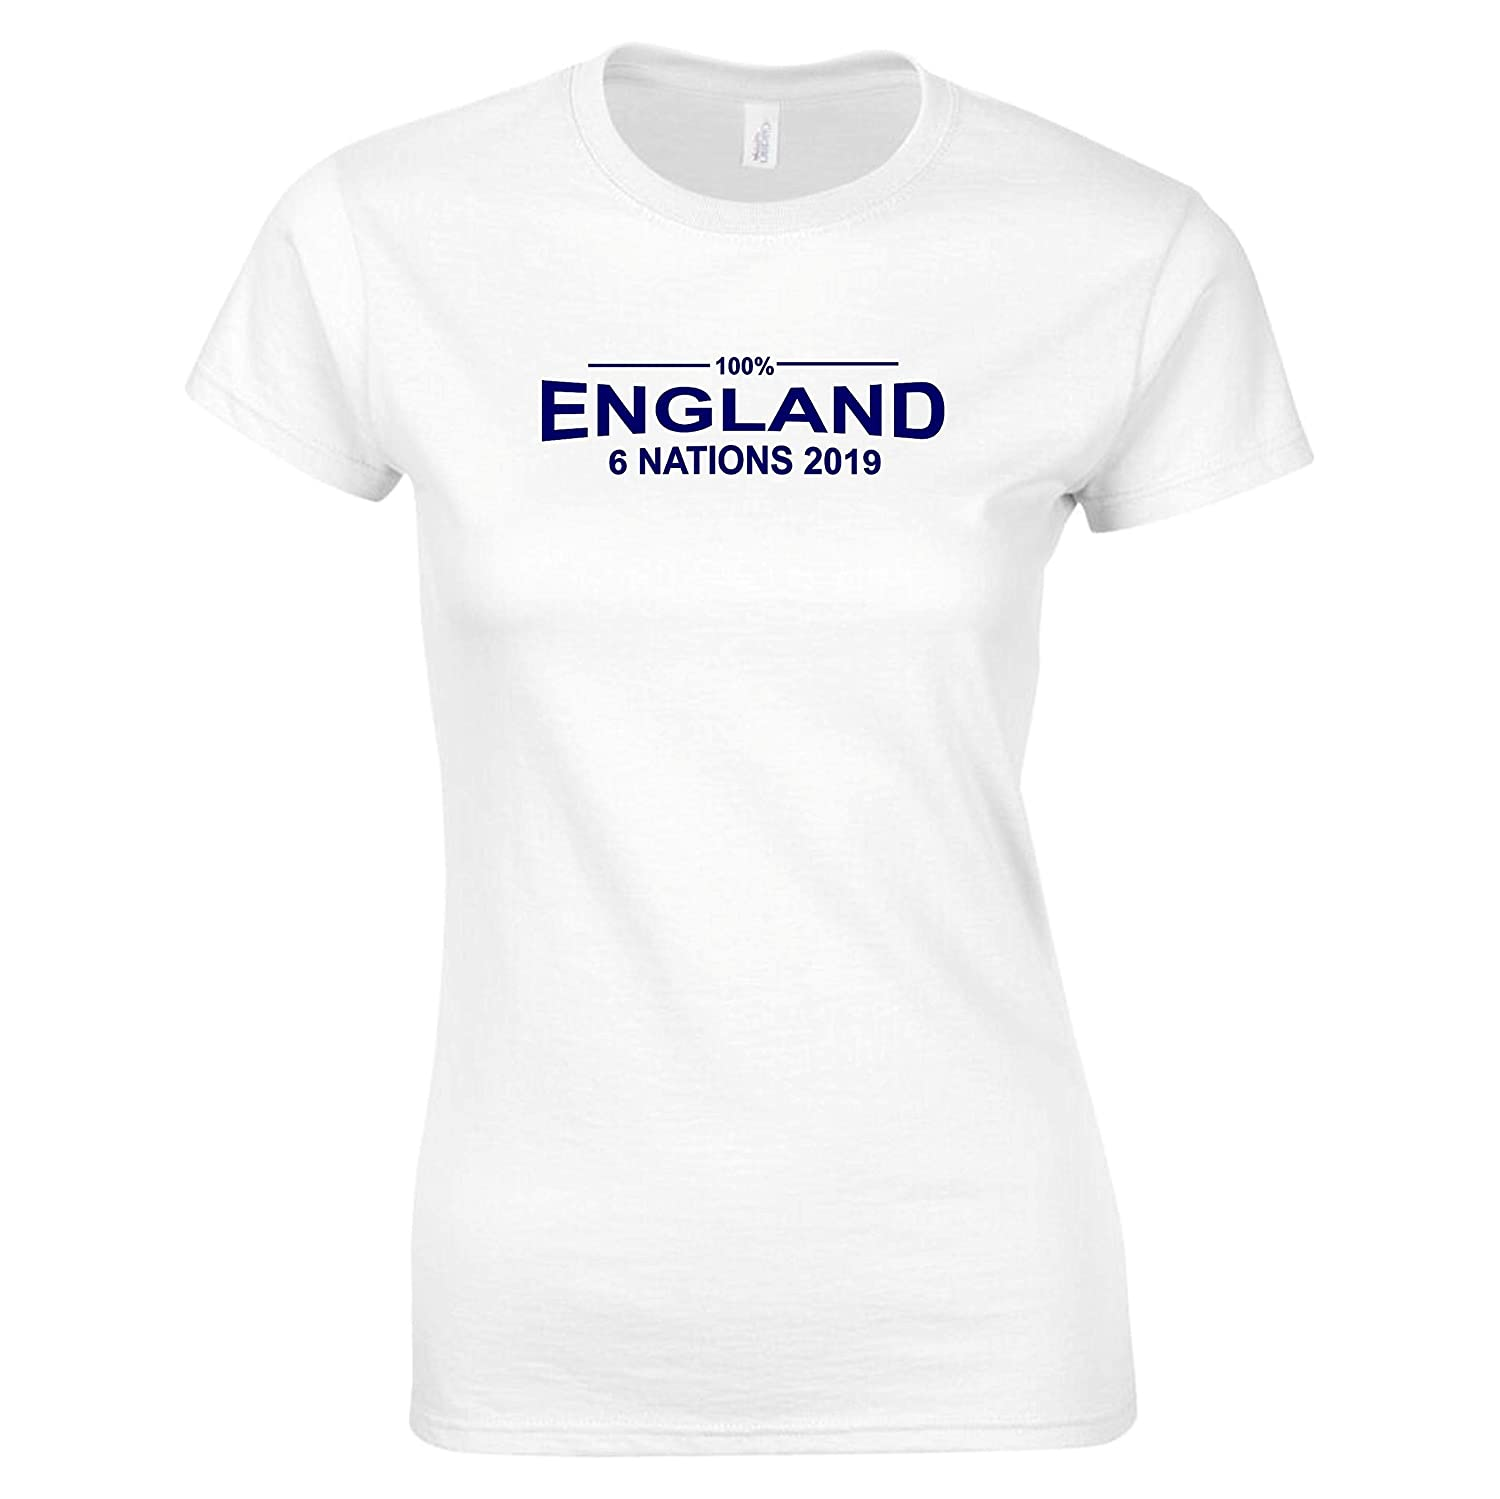 fa56a2e6fde 100% England Womens Rugby Six Nations 2019 T-Shirt Ladies White:  Amazon.co.uk: Clothing